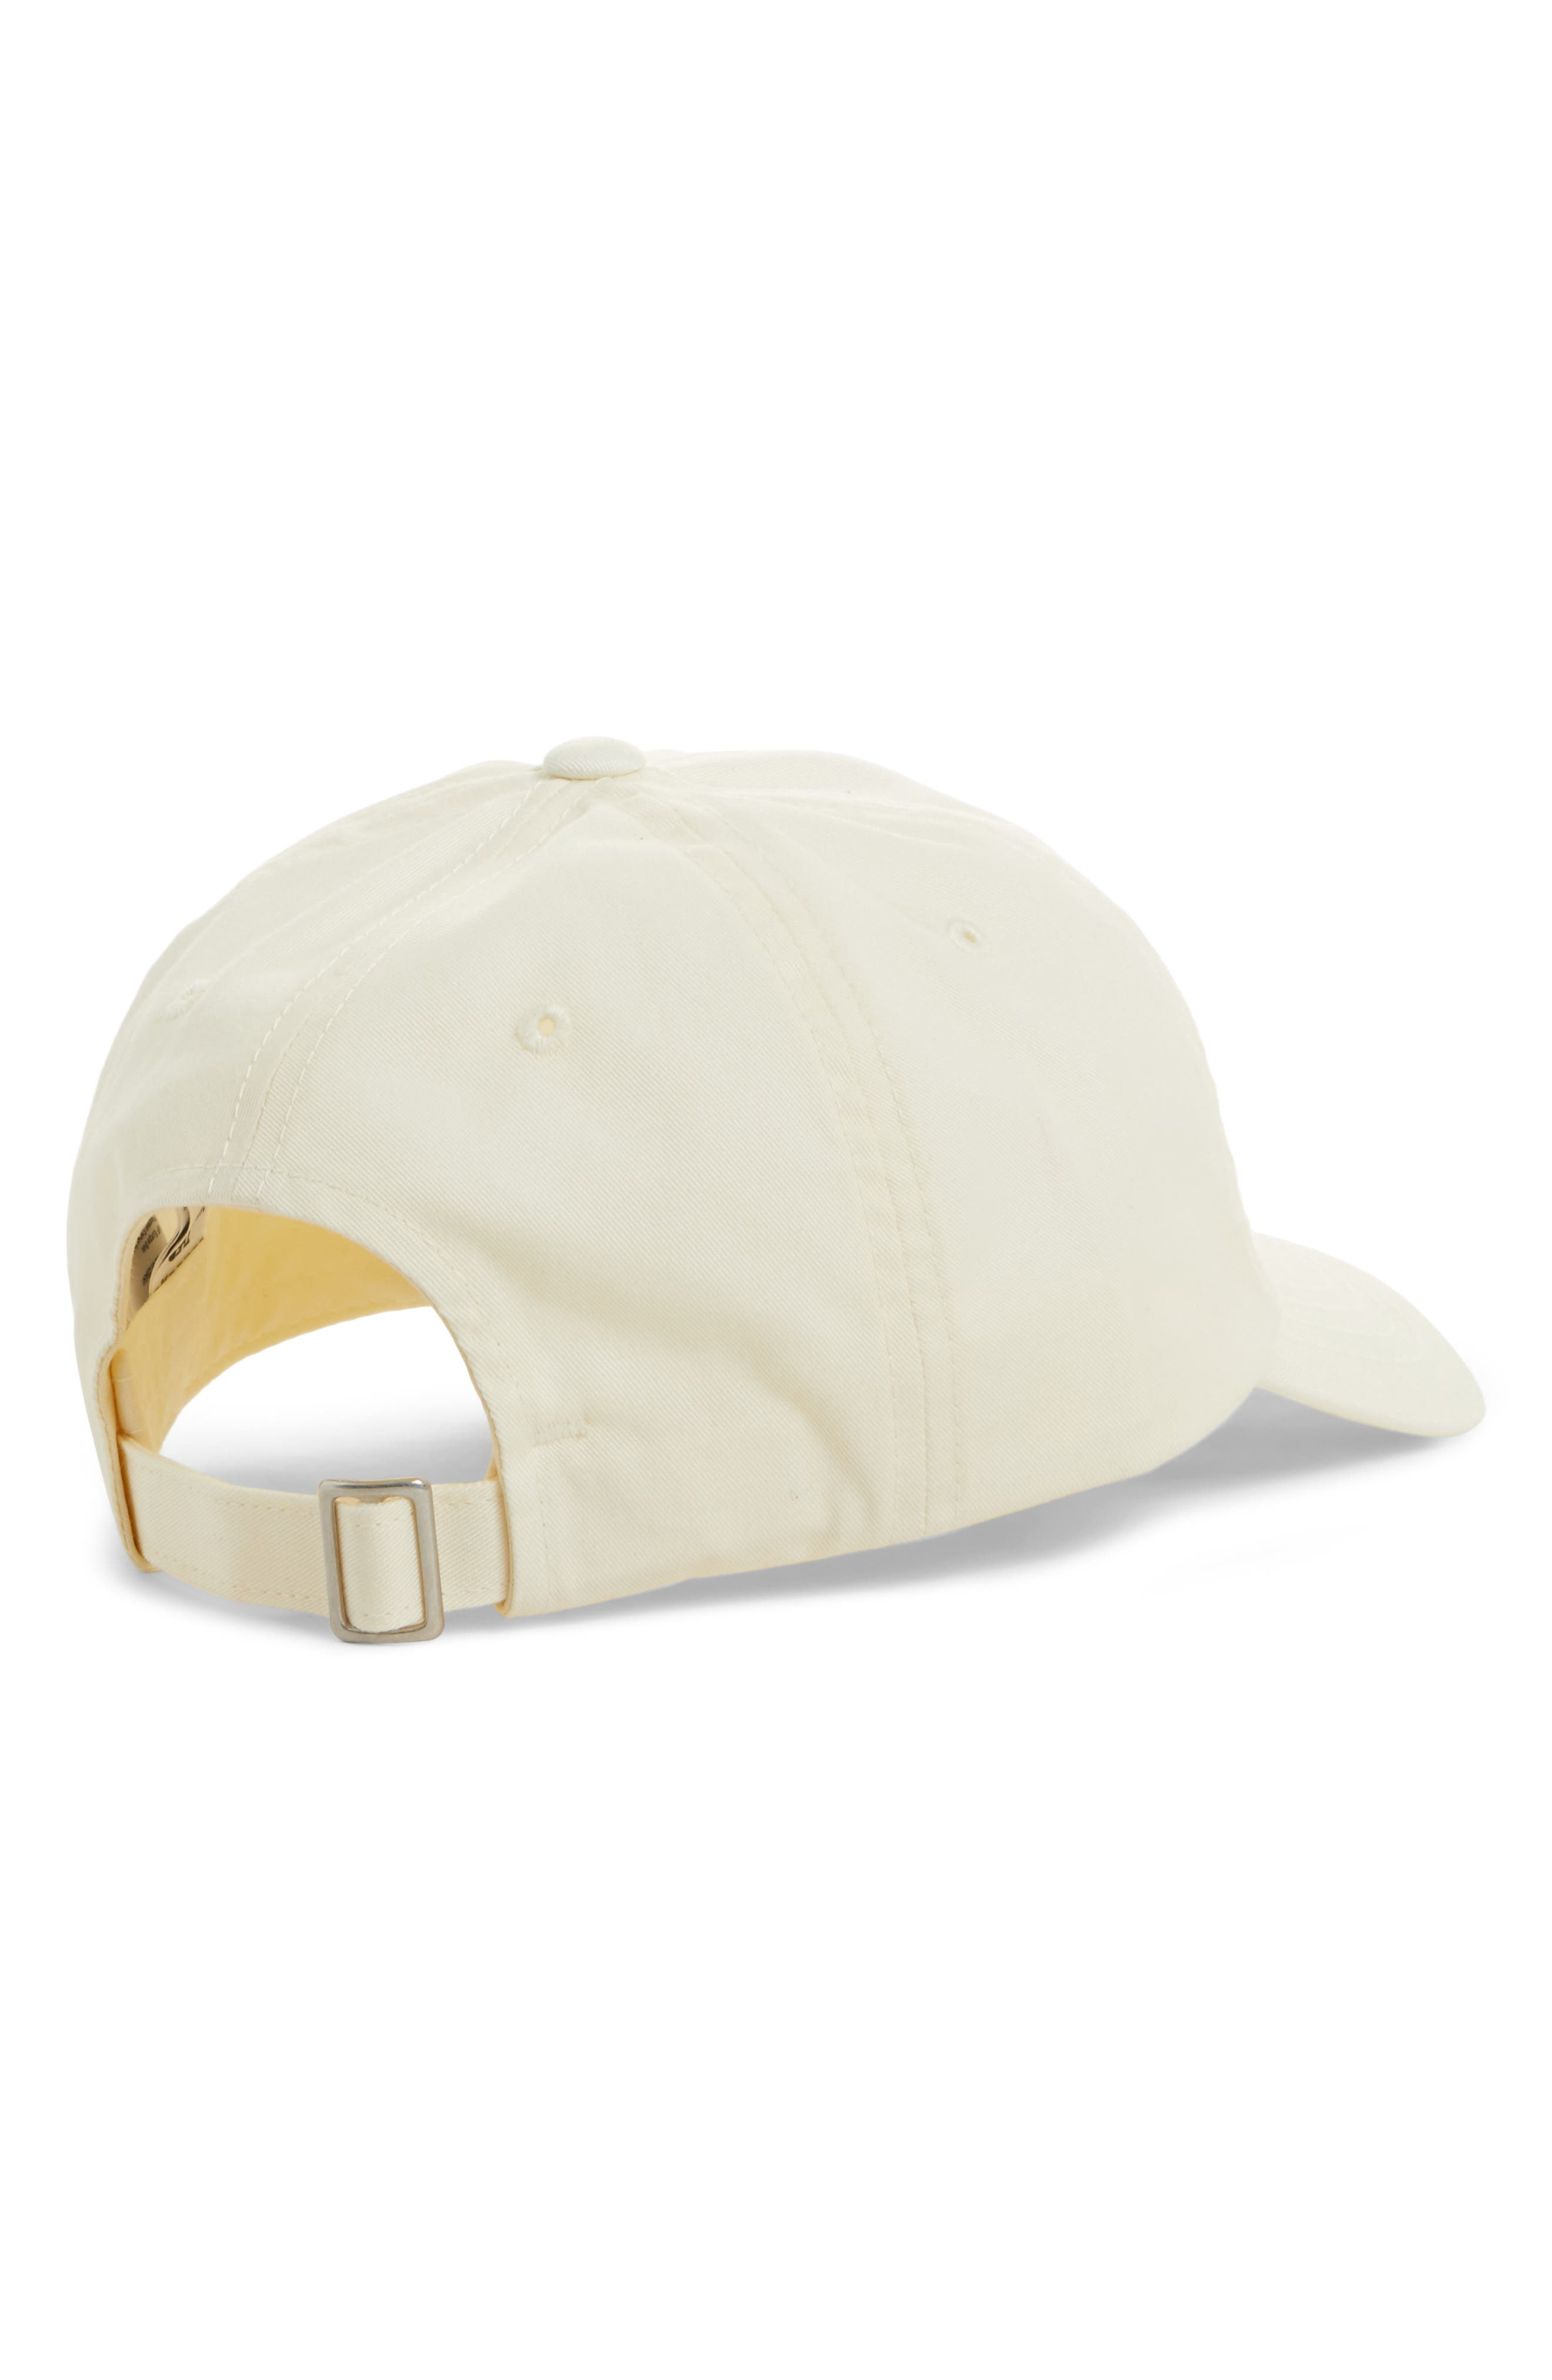 Norm Poppy Embroidered Adjustable Cap,                             Alternate thumbnail 8, color,